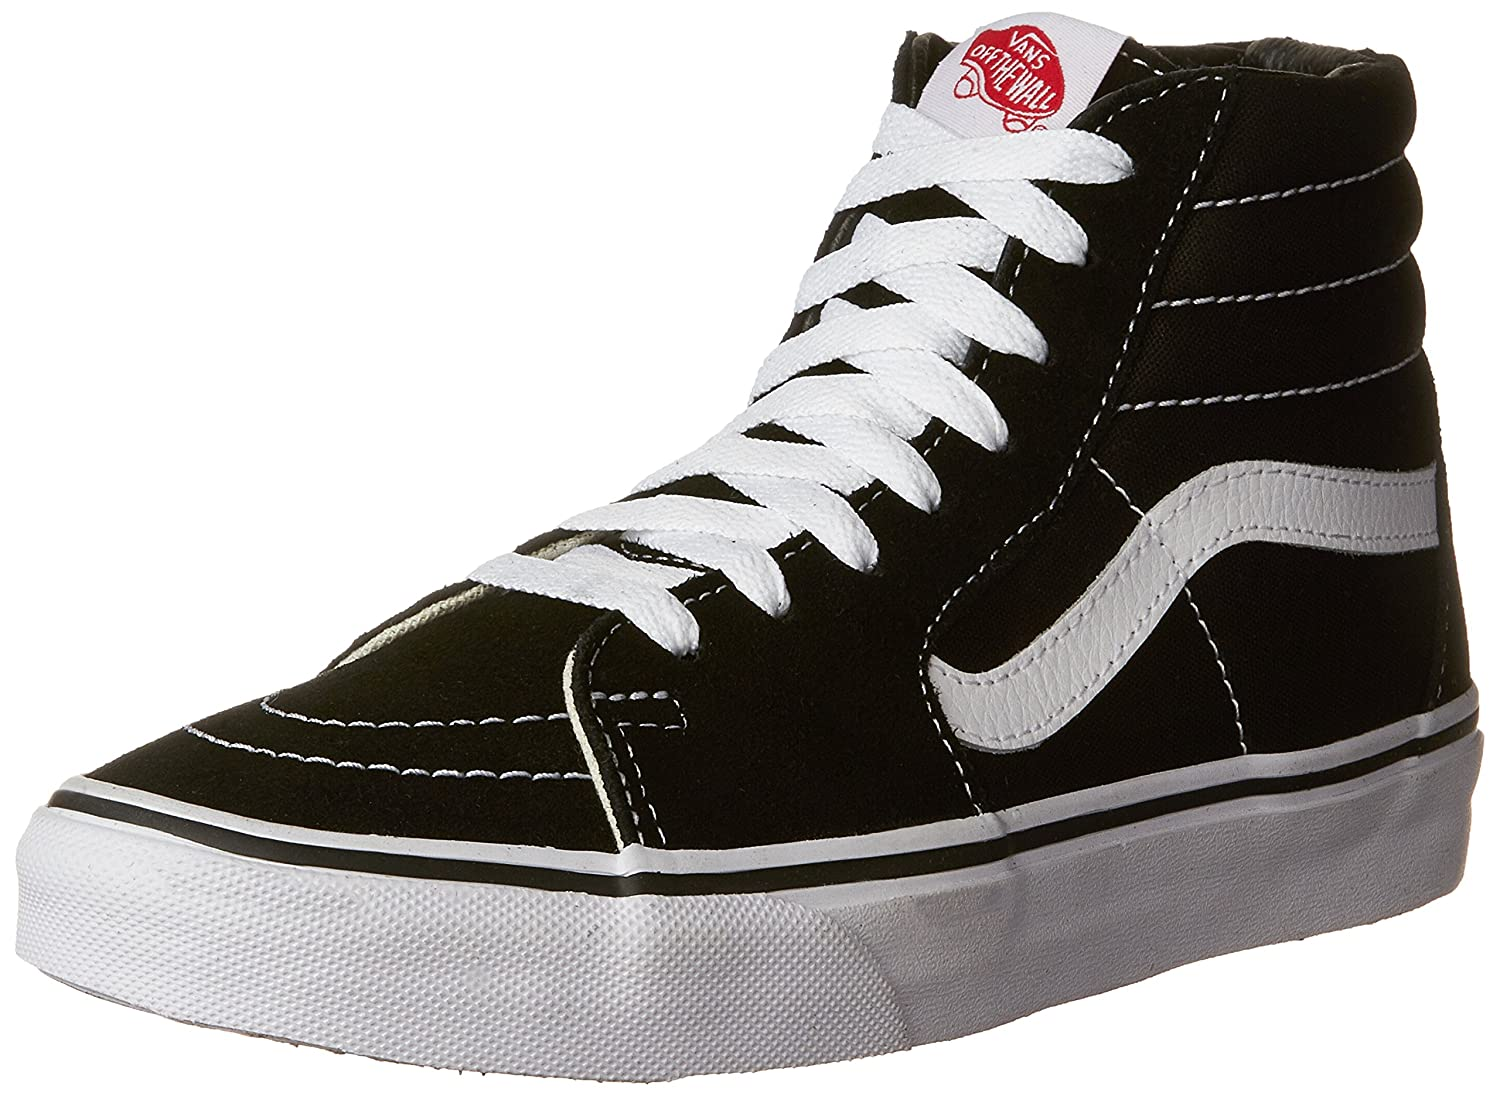 Vans Men's Sk8-Hi(Tm) Core Classics B075W7SC21 7.5 M US Women / 6 M US Men|Black/White